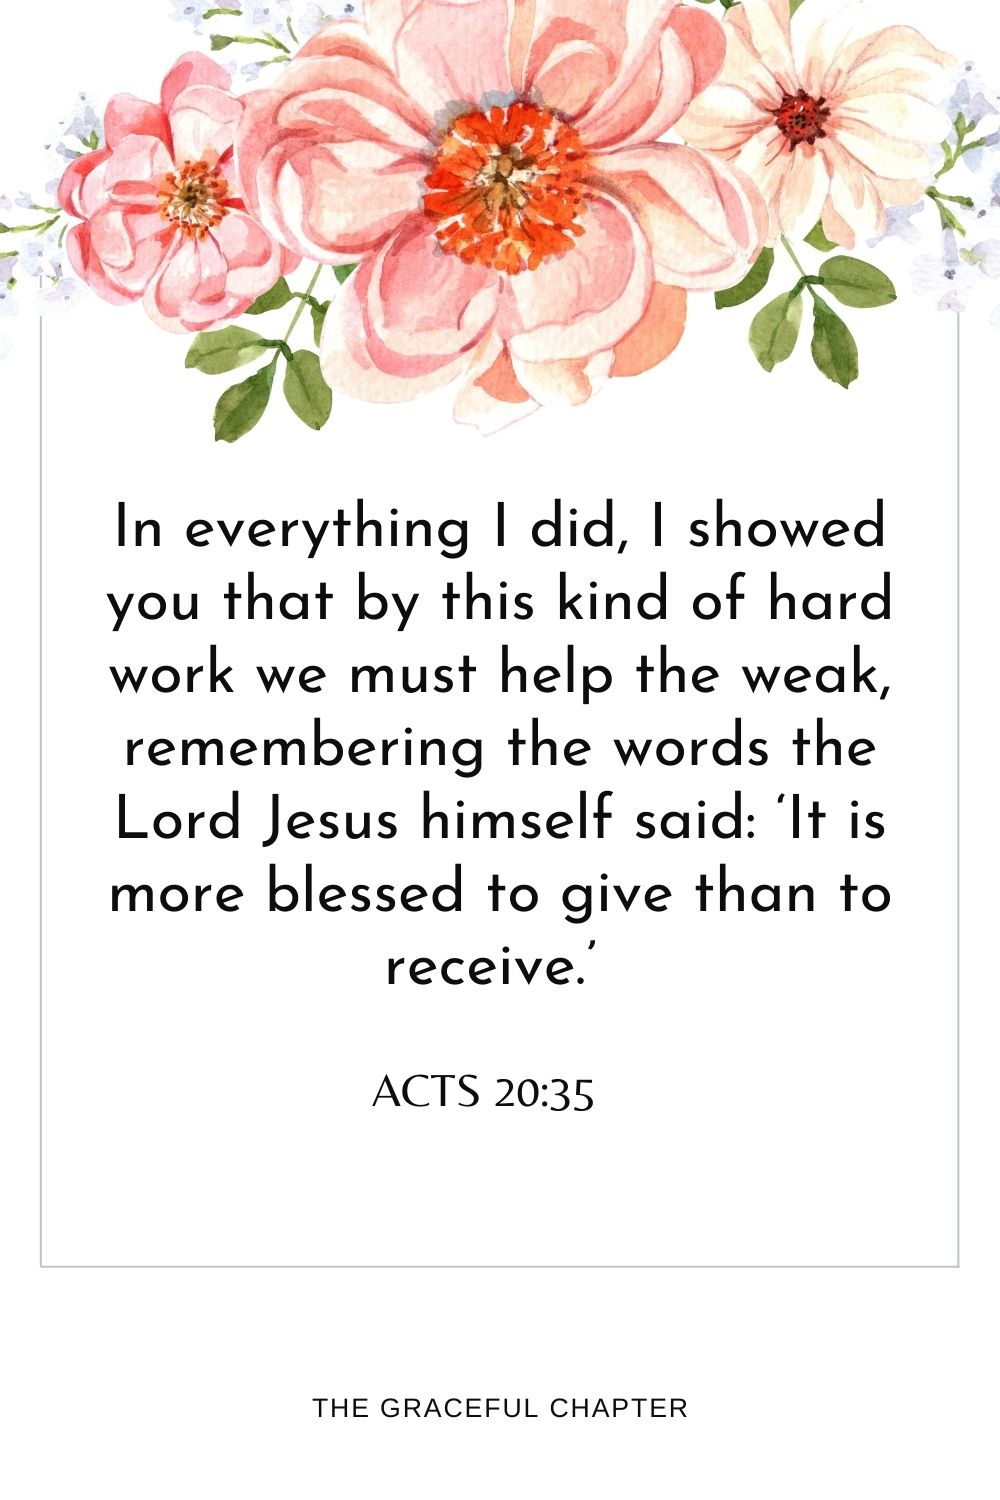 In everything I did, I showed you that by this kind of hard work we must help the weak, remembering the words the Lord Jesus himself said:'It is more blessed to give than to receive.' Acts 20:35